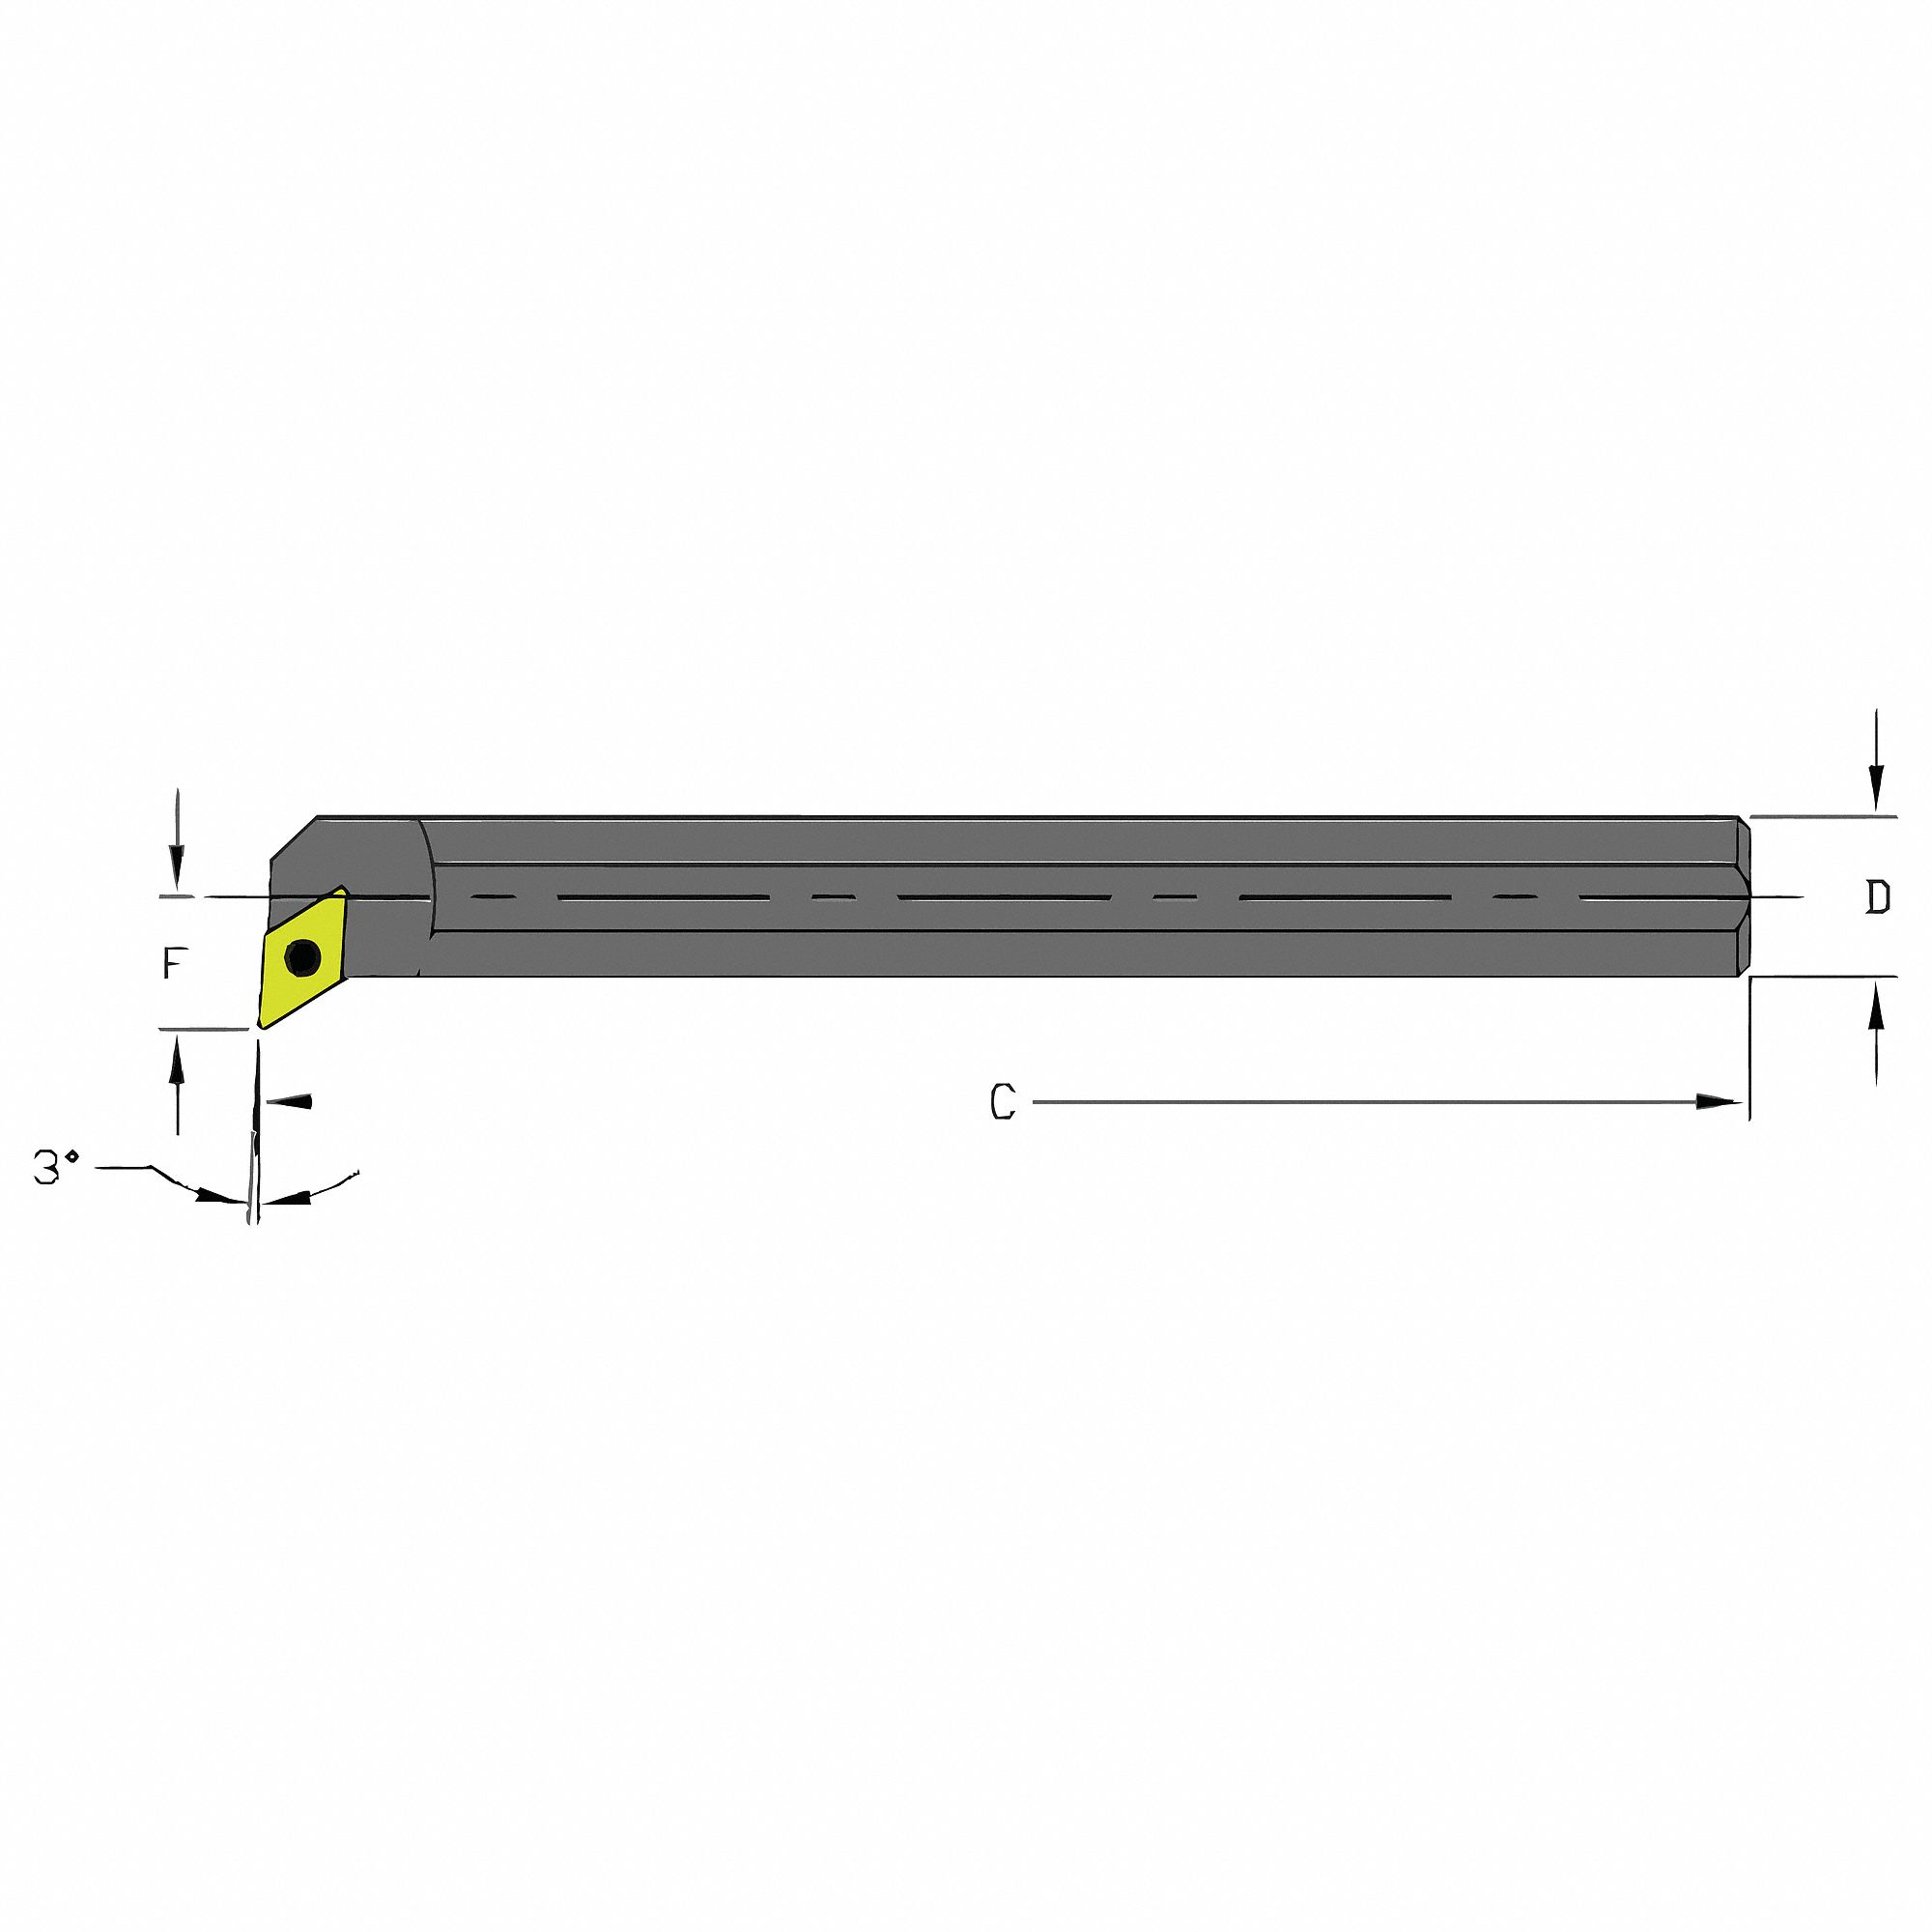 Indexable Boring Bar,  A-SDUC,  Insert Shape 55° Diamond,  Overall Length 5 in